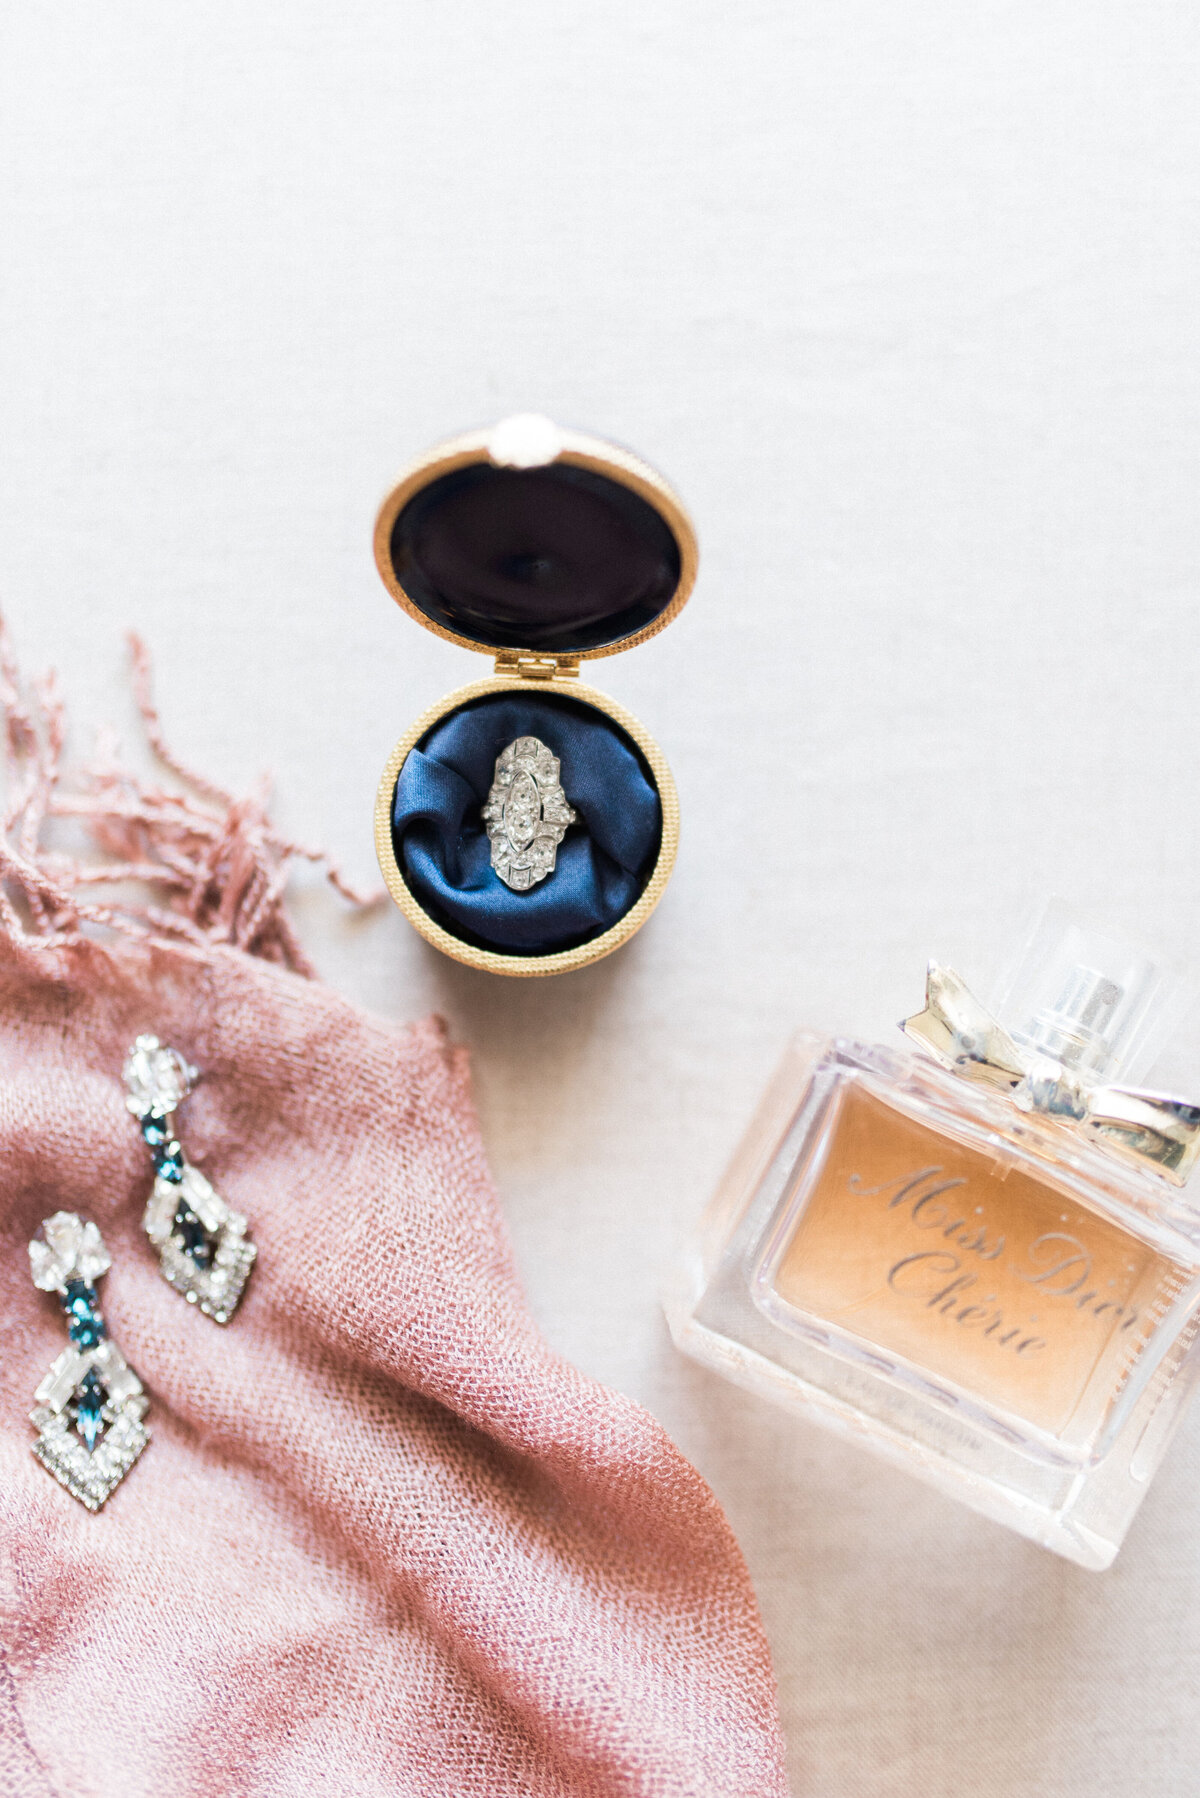 Beautiful wedding ring, heirloom earrings, and perfume worn on wedding day